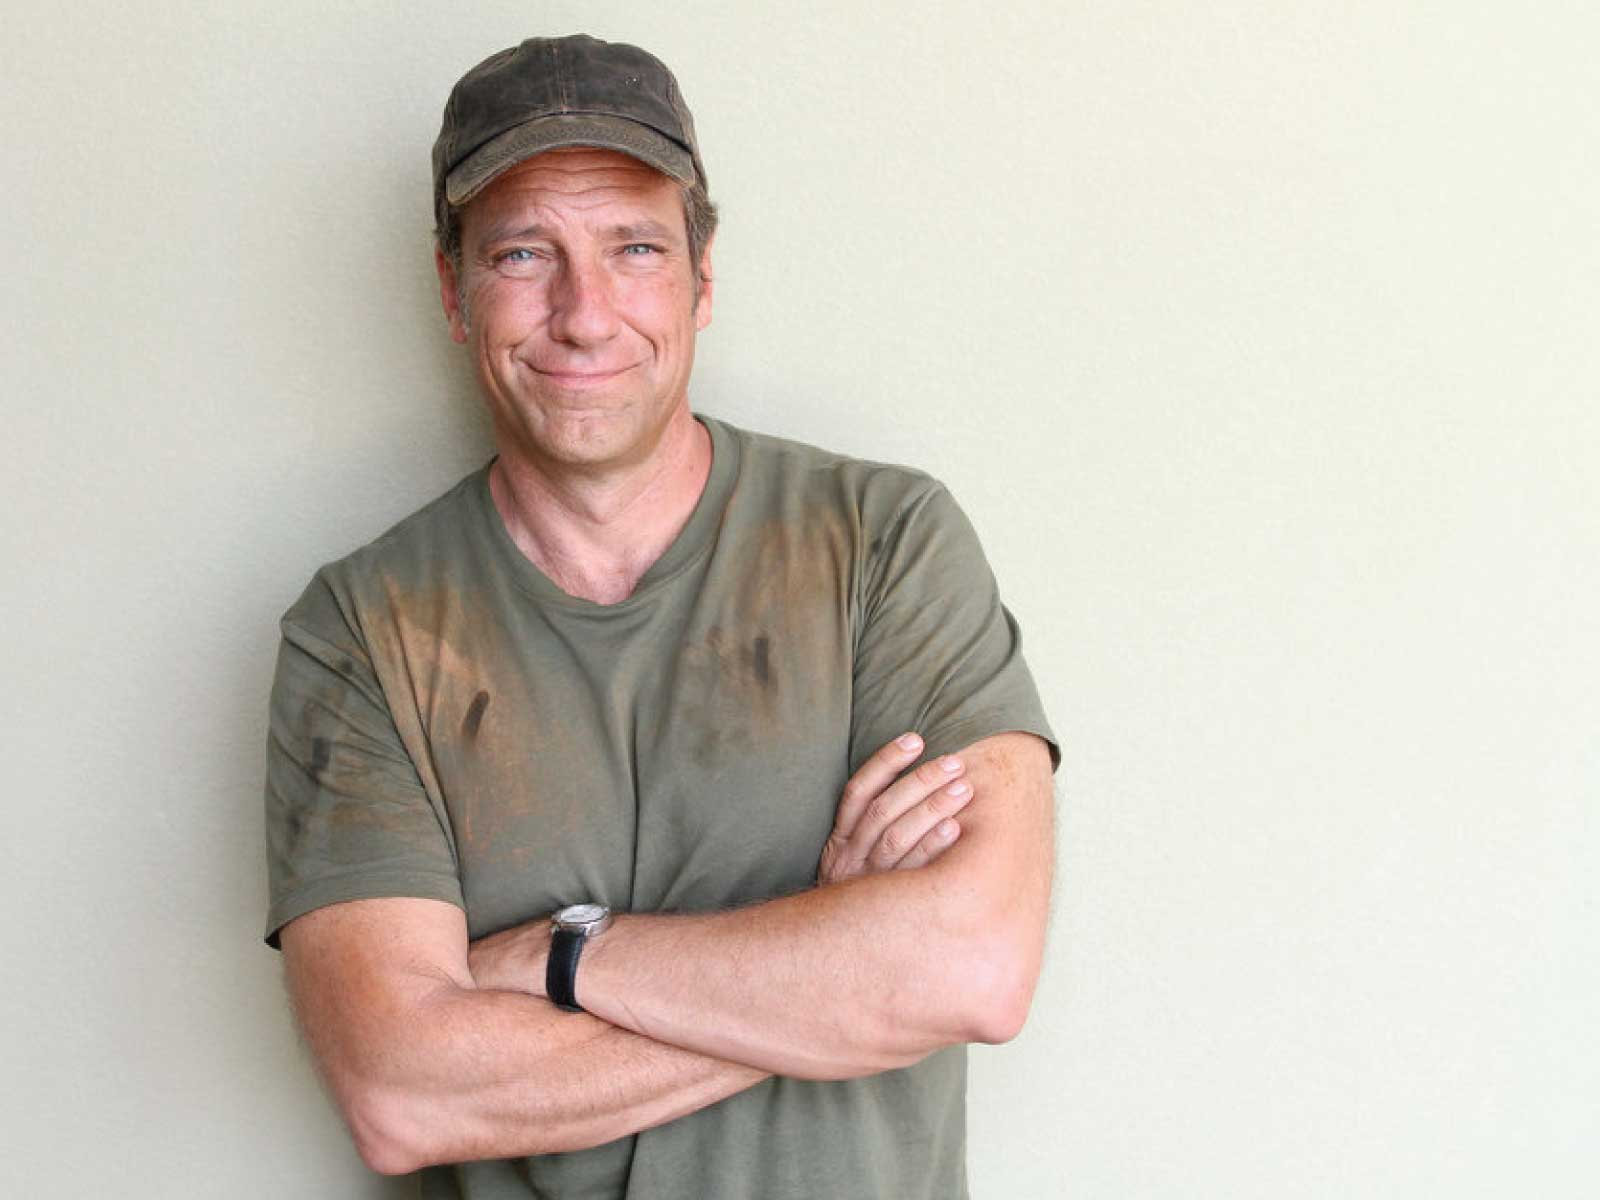 mike rowe soft vs microsoftmike rowe trump, mike rowe ted, mike rowe dirty jobs, mike rowe learning from dirty jobs, mike rowe microworks, mike rowe dead, mike rowe workout, mike rowe wife, mike rowe show, mike rowe wiki, mike rowe soft, mike rowe soft vs microsoft, mike rowe ted talk, mike rowe, mike rowe married, mike rowe works, mike rowe singing, mike rowe book, mike rowe wikipedia, mike rowe net worth